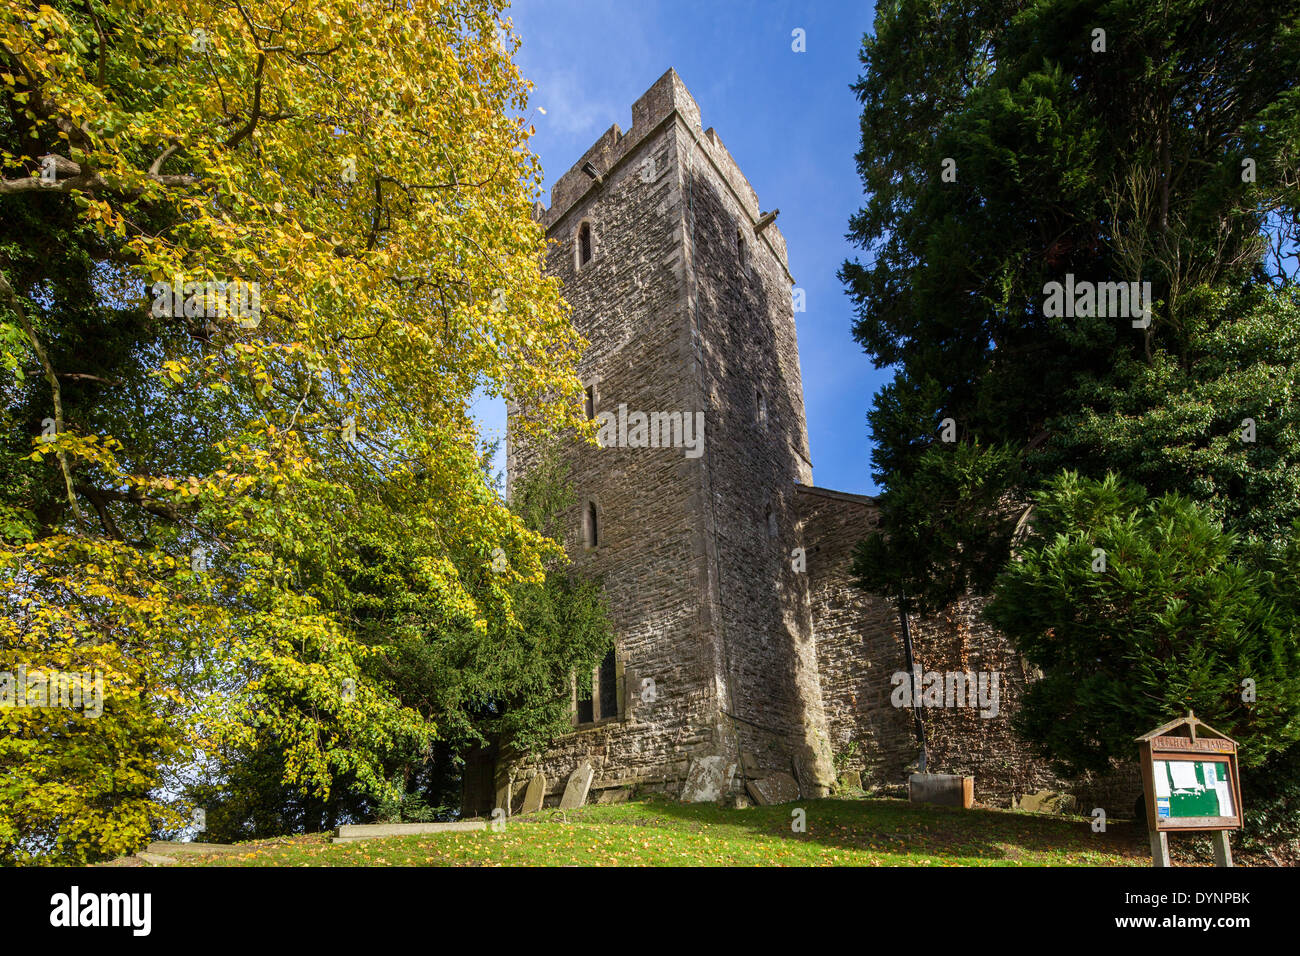 St. James Church Wigmore Herefordshire England UK - Stock Image